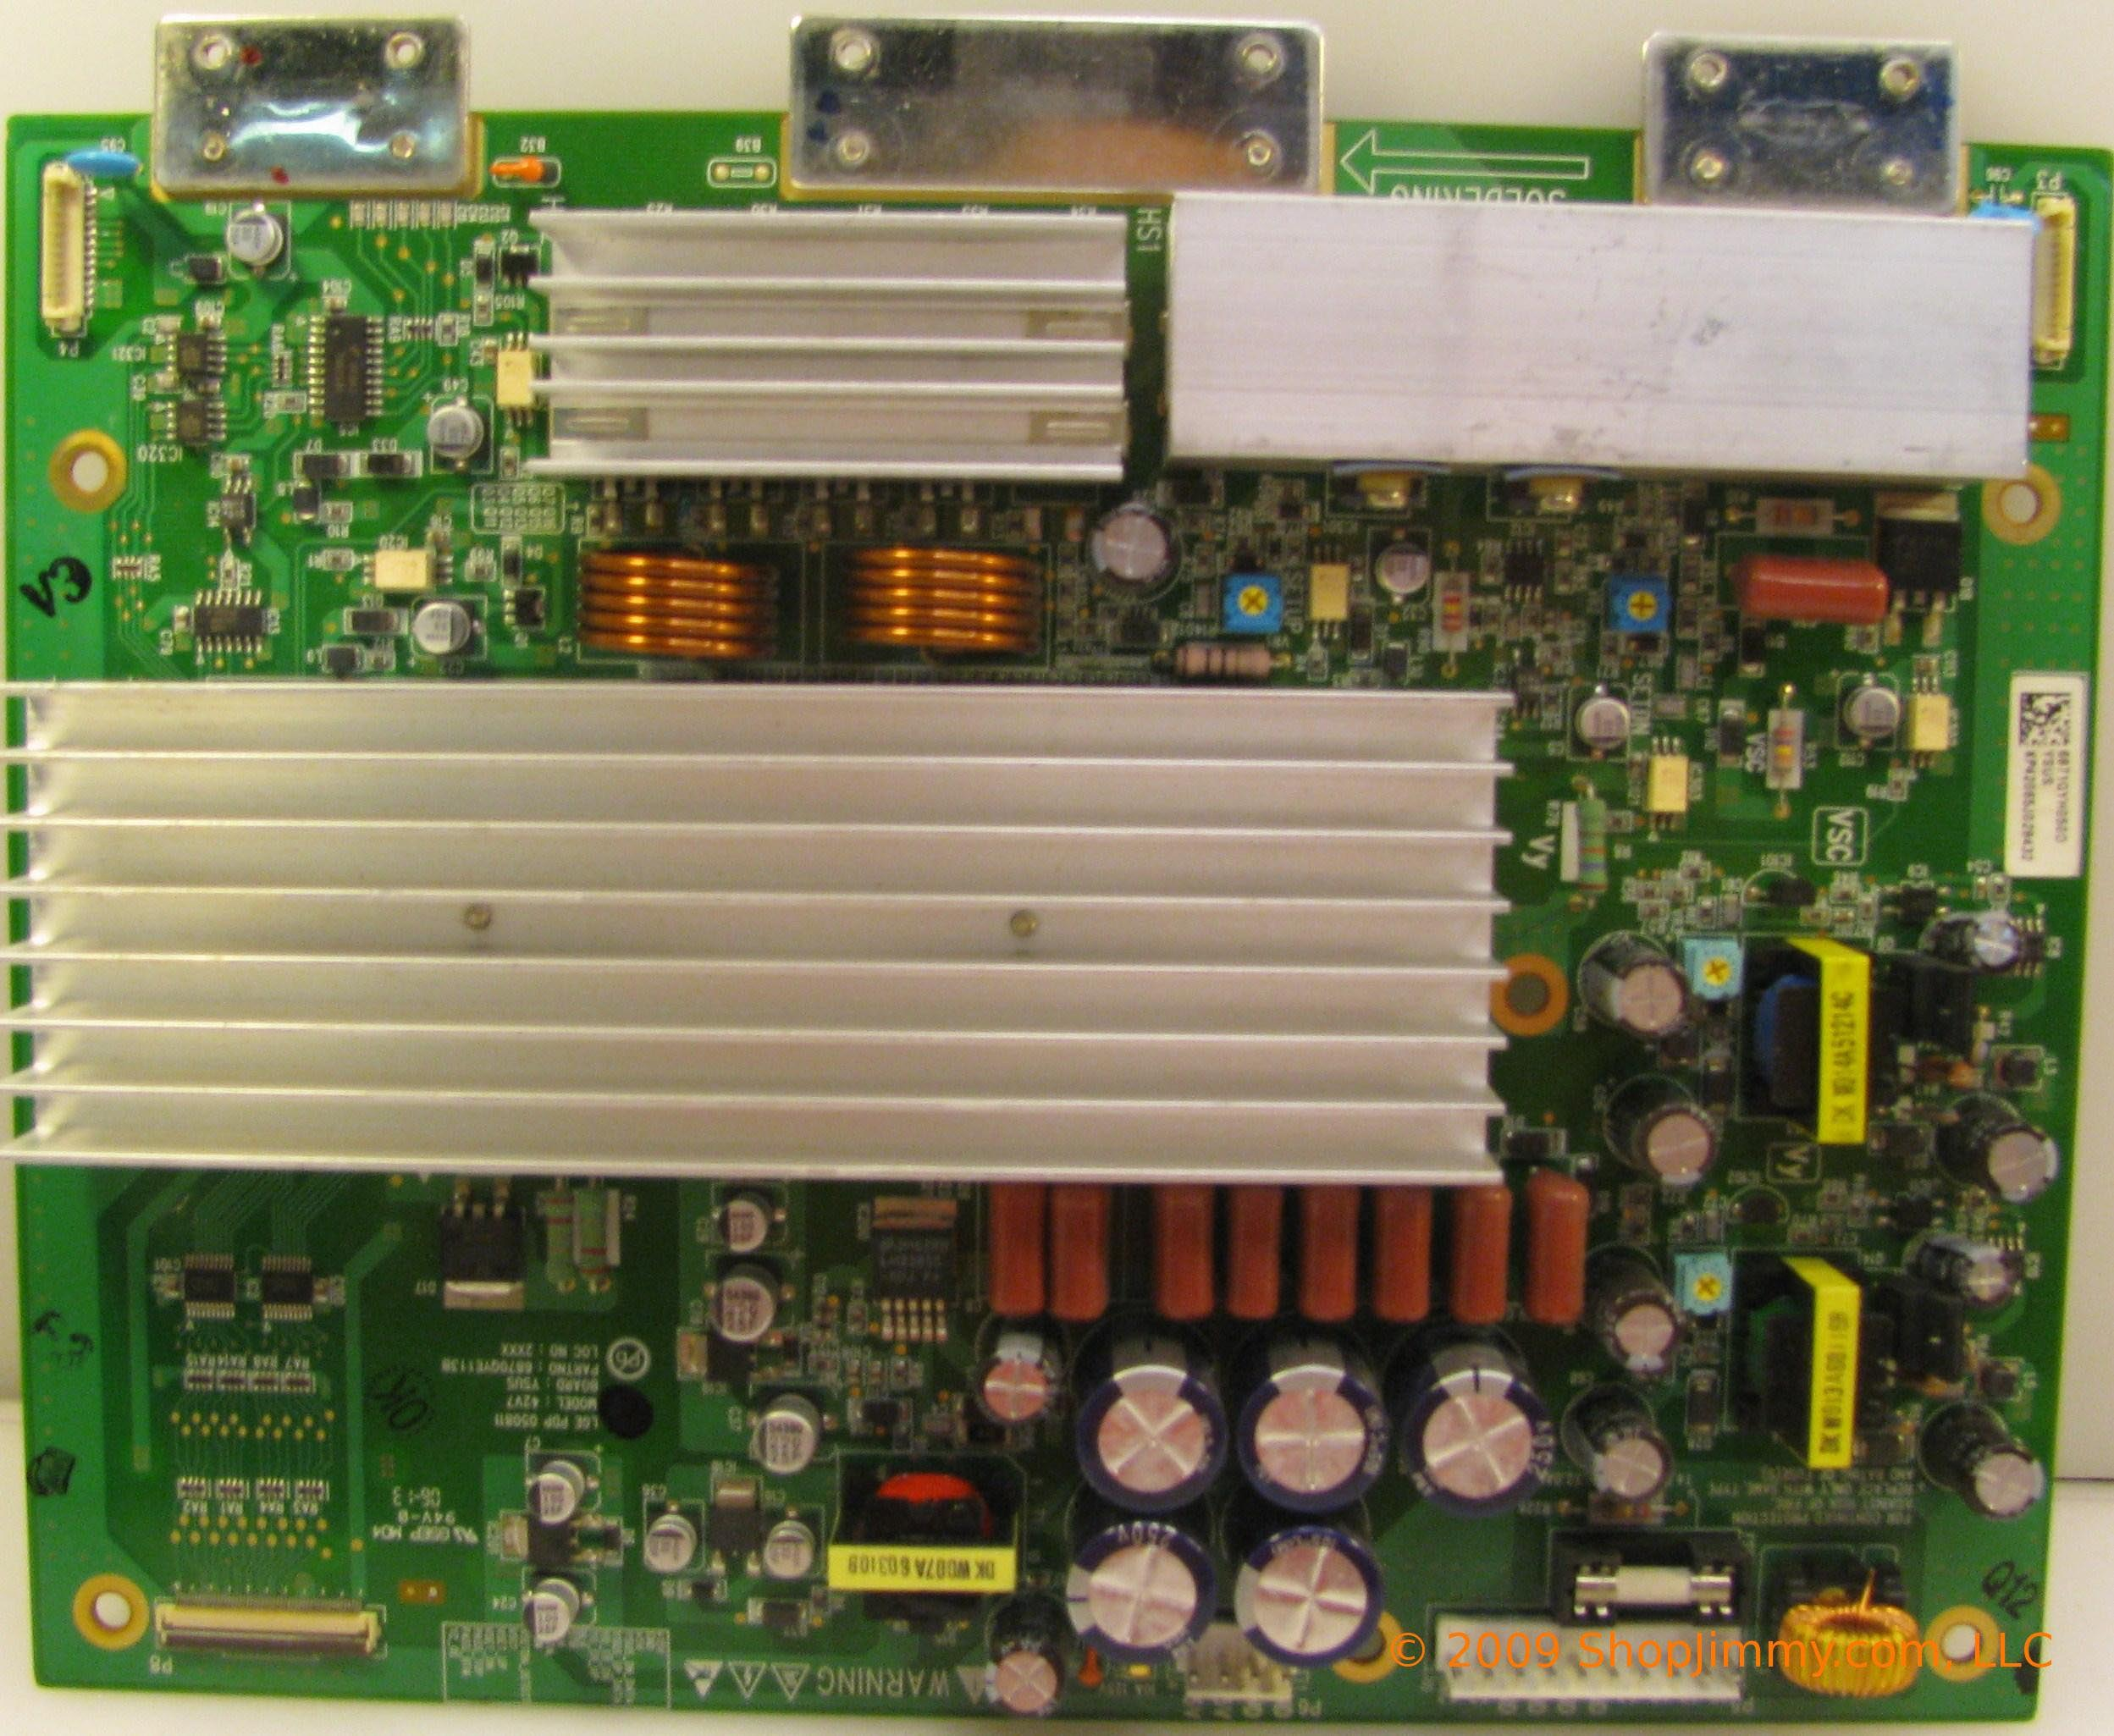 BOARD:Y, Part Number: 	6871QYH050D, 42V7 (0.00лв) BOARD:Y, Part Number: 	6871QYH